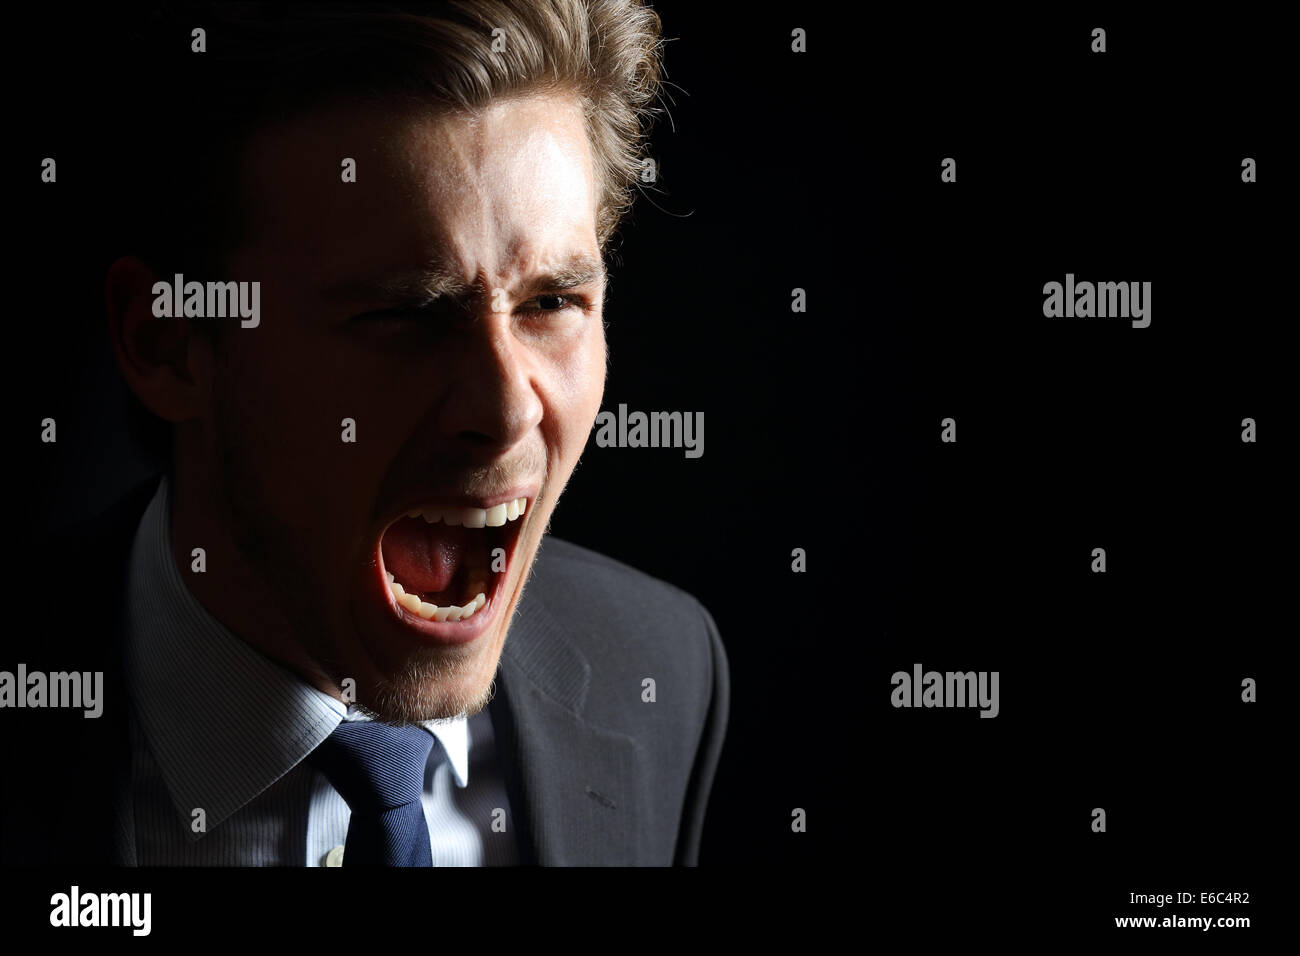 Angry businessman shouting isolated in a black background - Stock Image